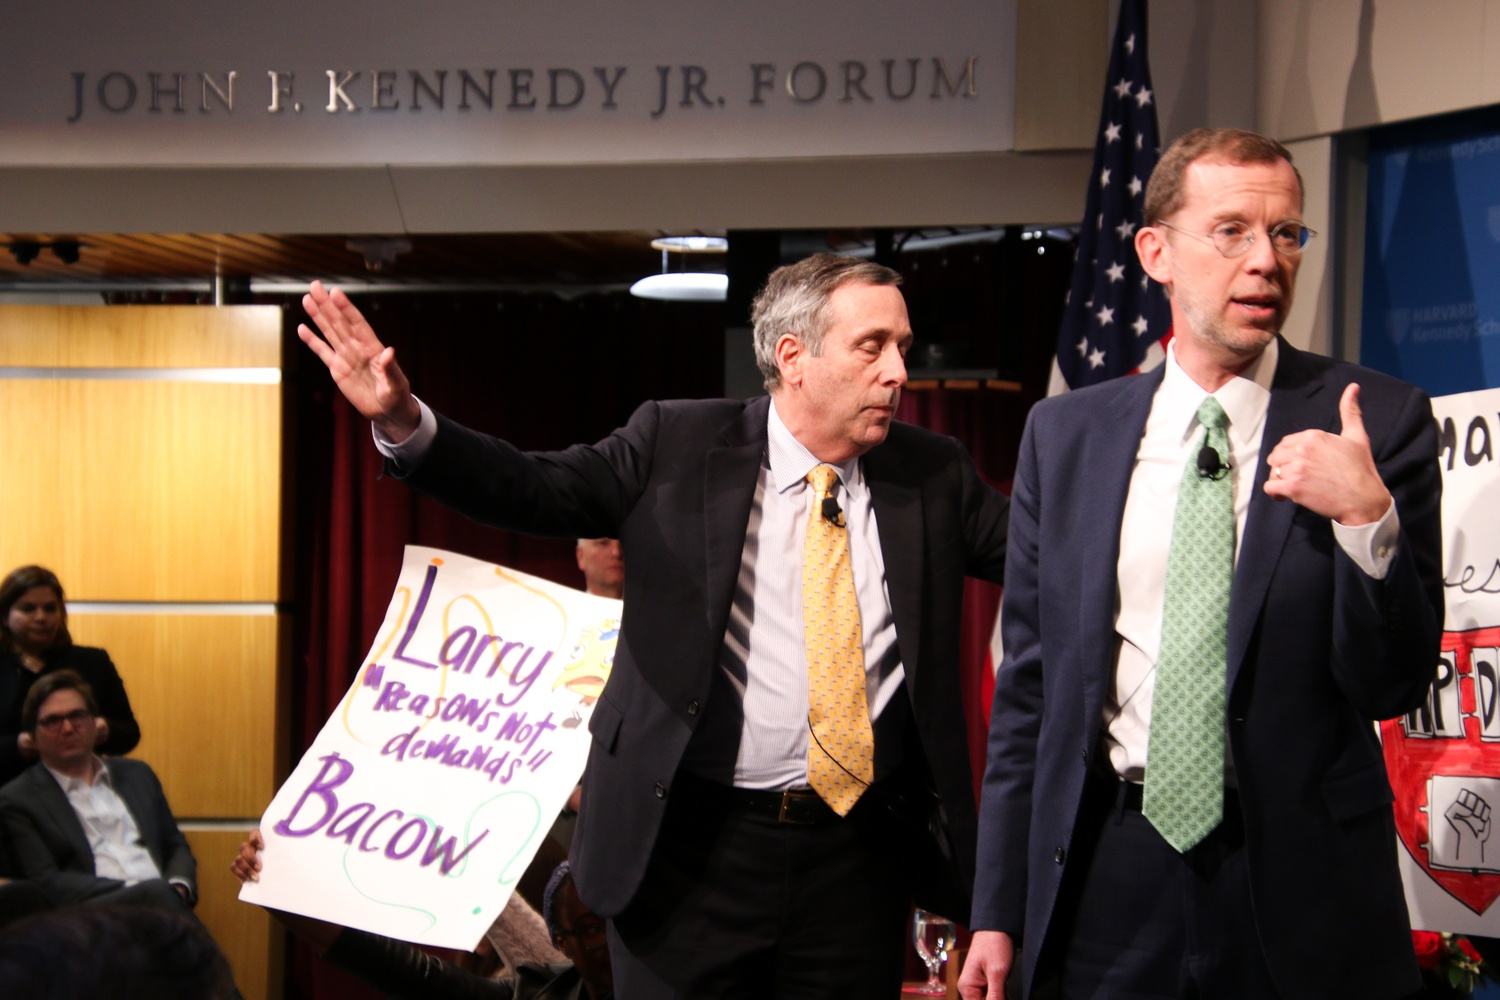 University President Lawrence S. Bacow attempts to quiet protestors before exiting the John F. Kennedy Jr. Forum.